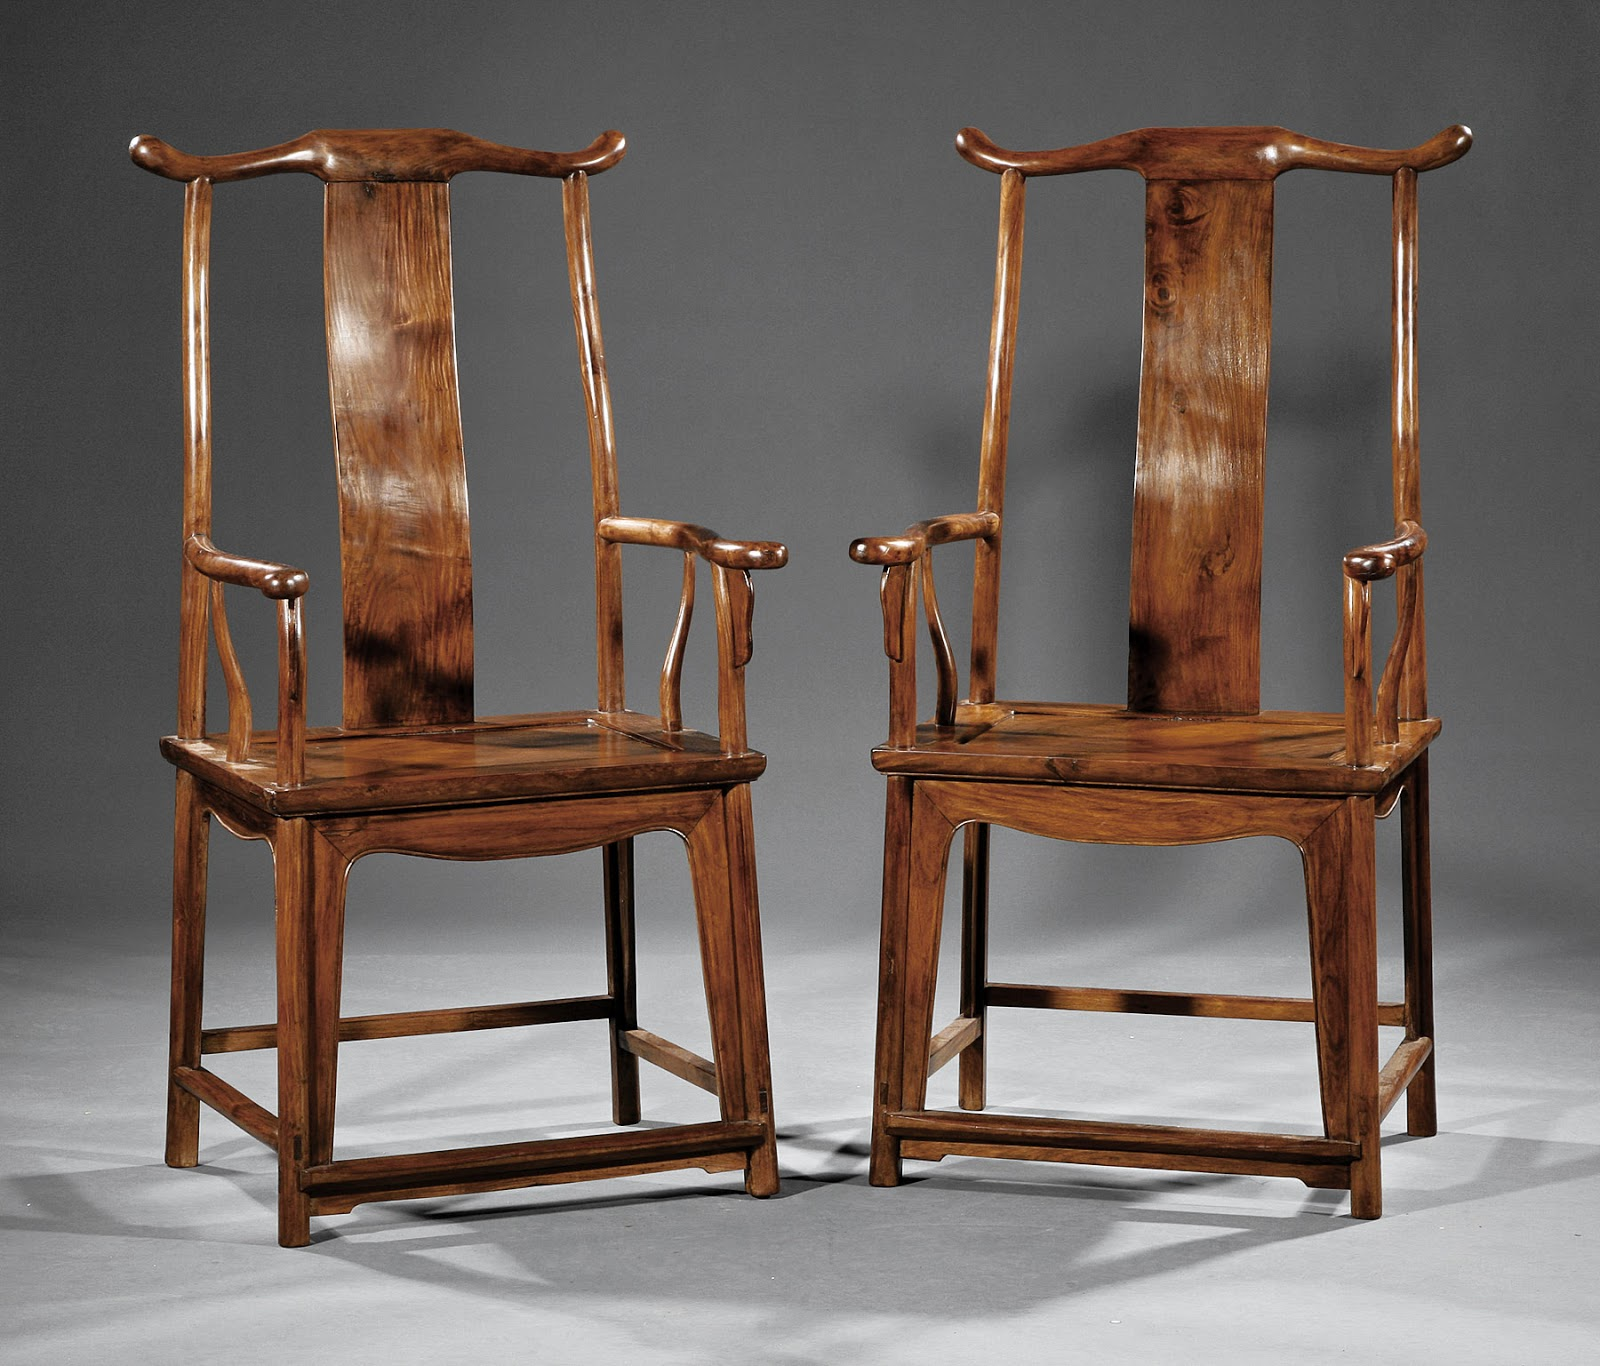 Fiorito Interior Design Know Your Chairs Chinese Yoke